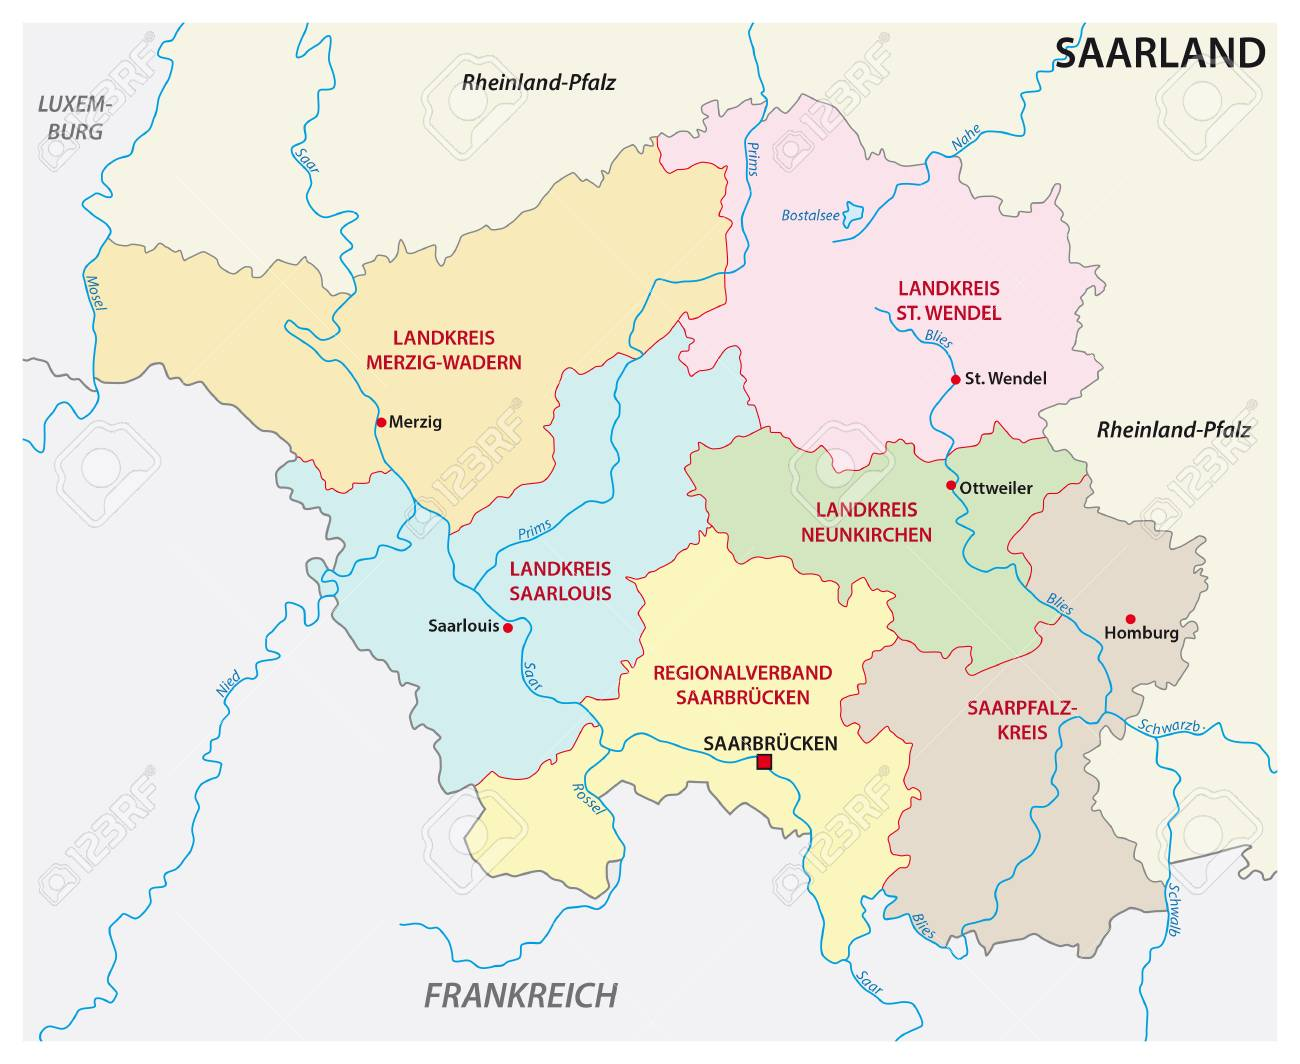 Administrative And Political Map Of The State Of Saarland In